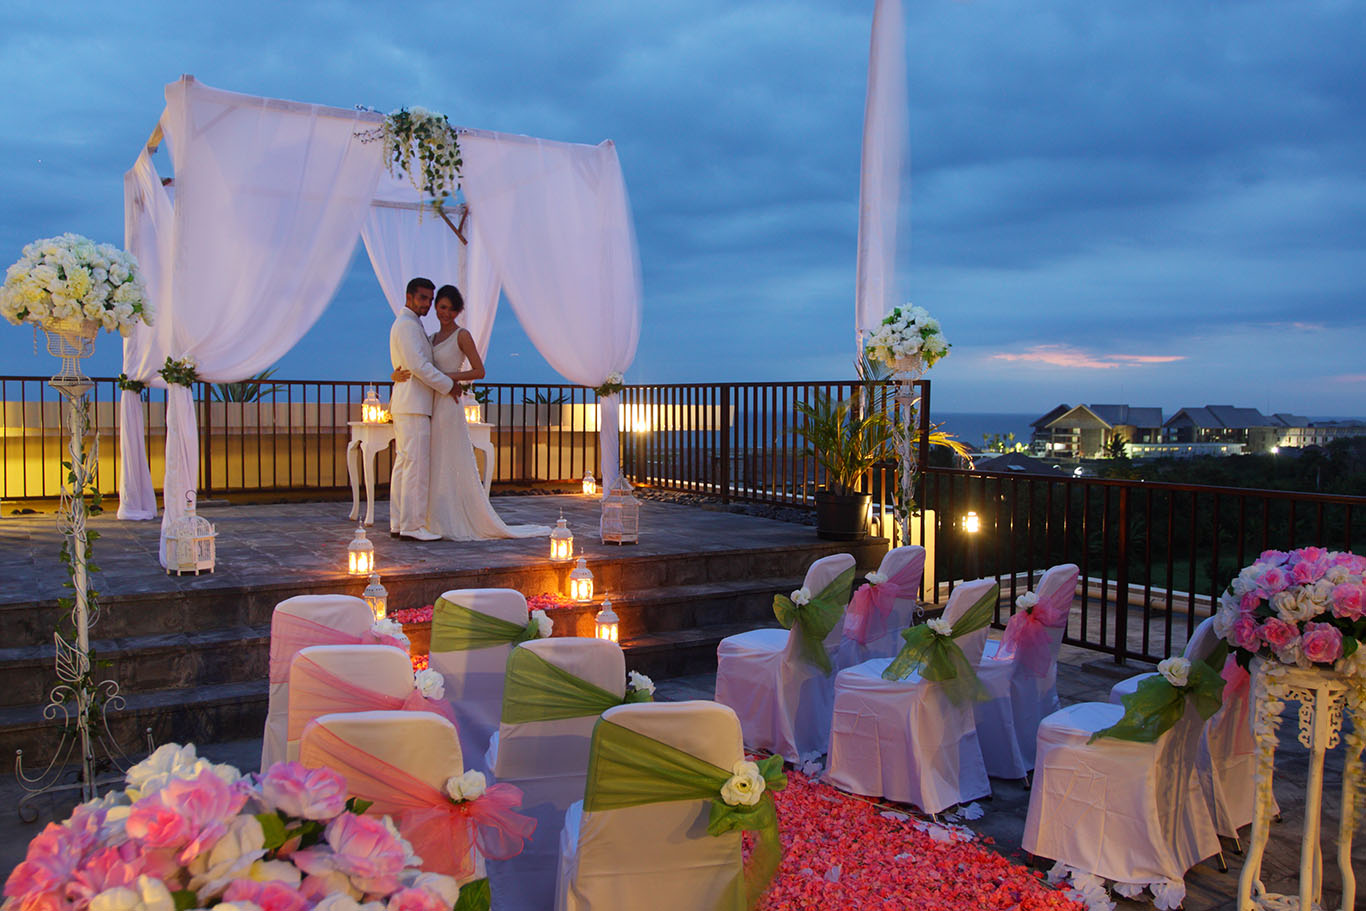 Elaborate Wedding & Reception